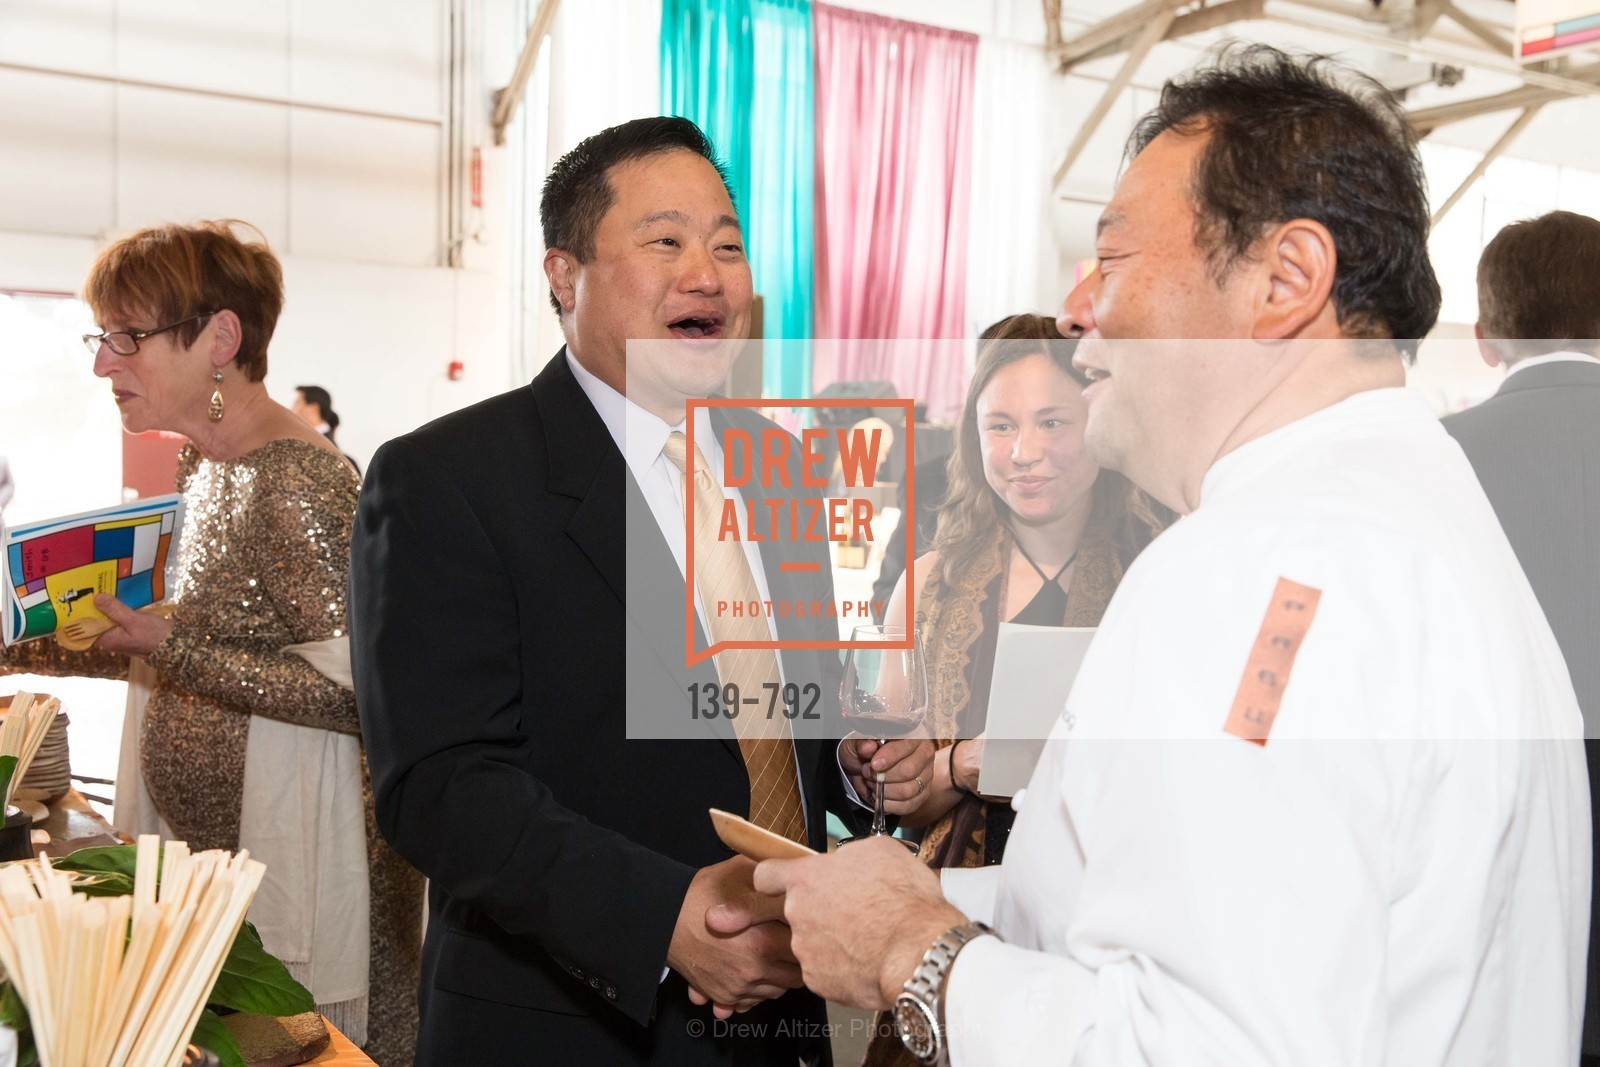 Extras, MEALS ON WHEELS OF SAN FRANCISCO'S 28th Annual Star Chefs and Vintners Gala, April 20th, 2015, Photo,Drew Altizer, Drew Altizer Photography, full-service agency, private events, San Francisco photographer, photographer california